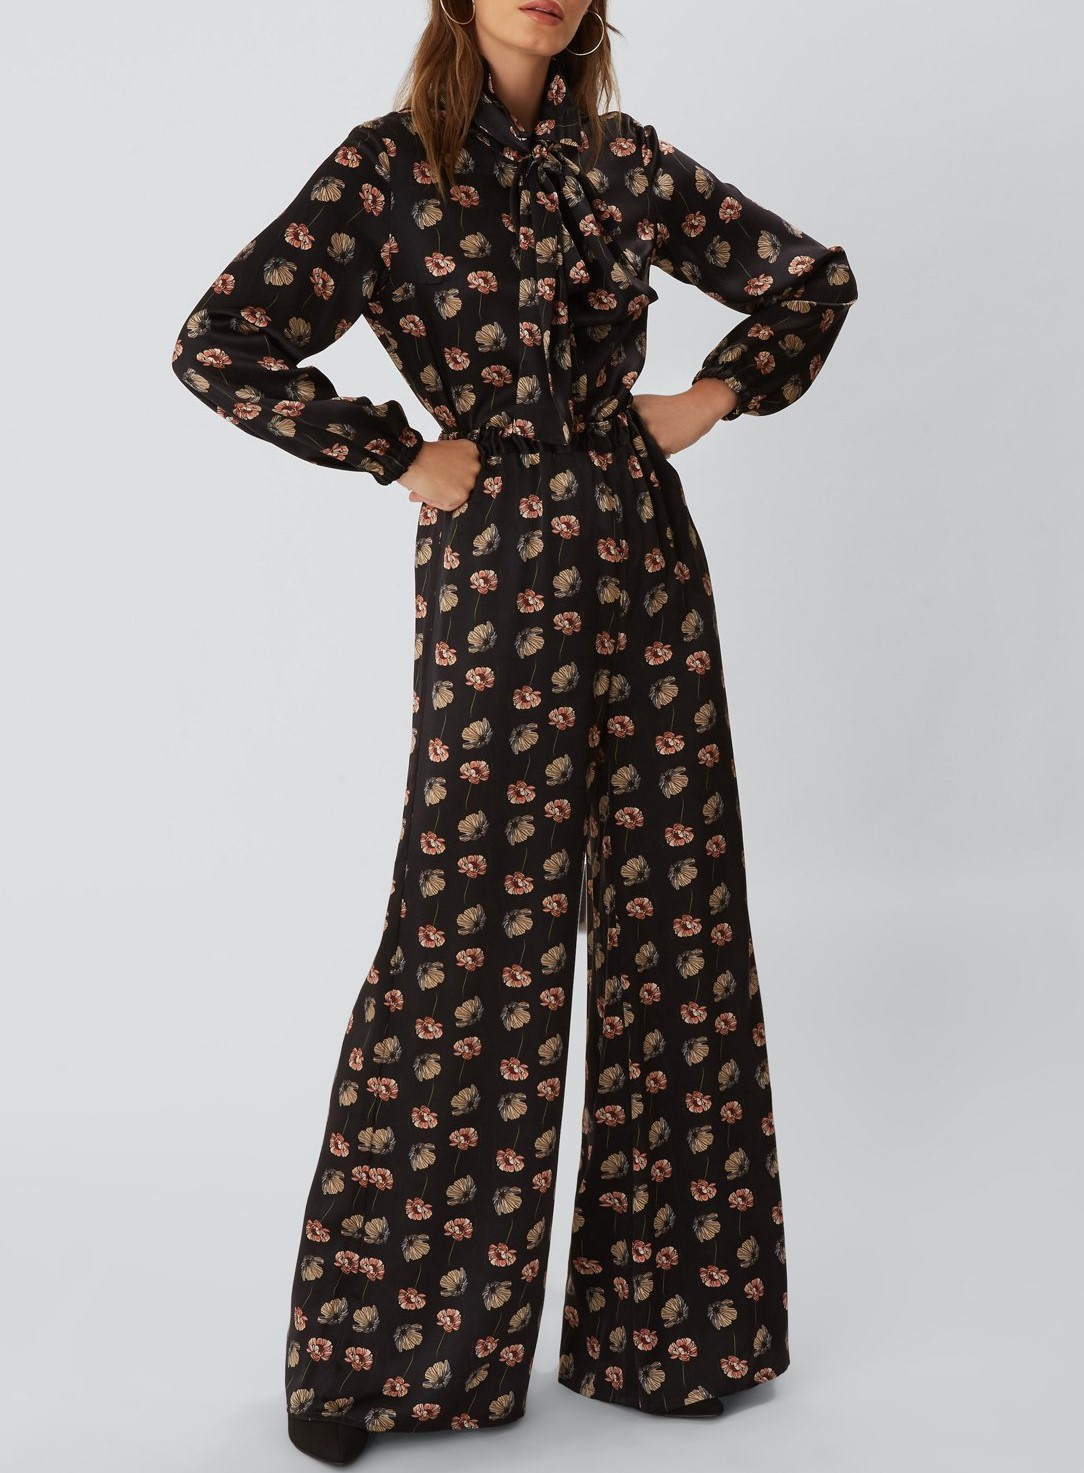 PEGGY wide leg palazzo trouser black poppy, £250